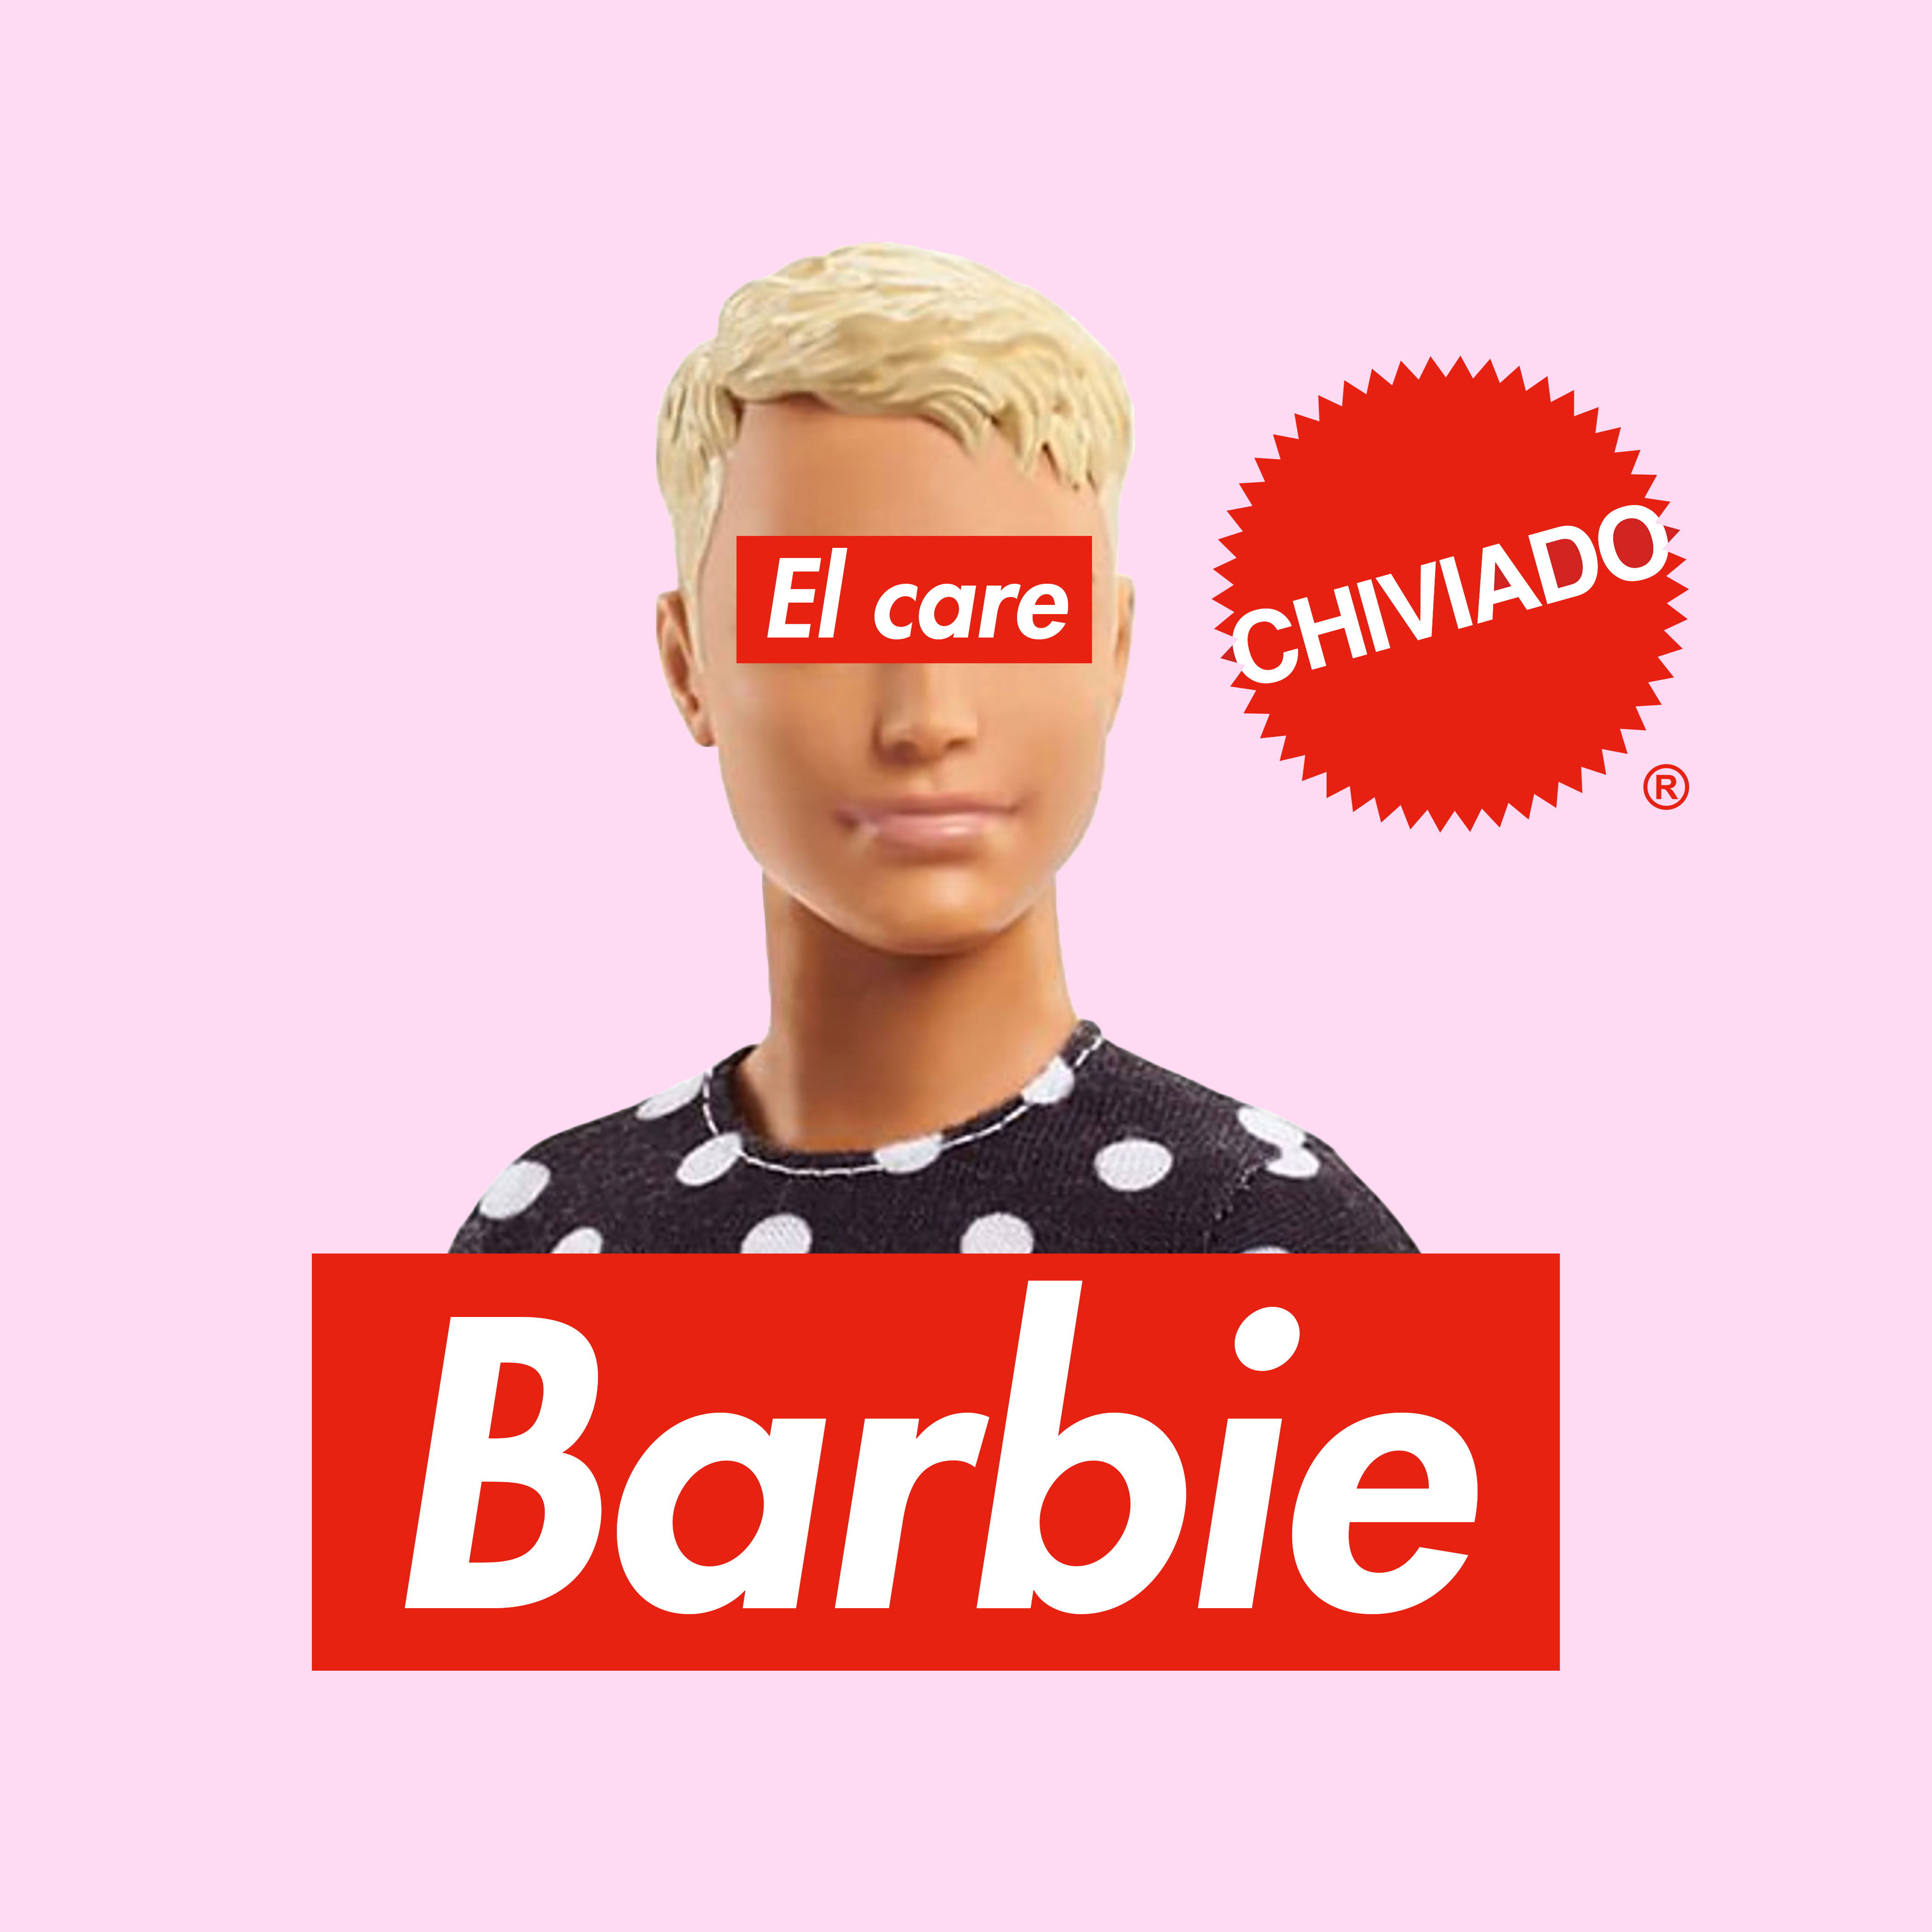 el-care-barbie1.jpg